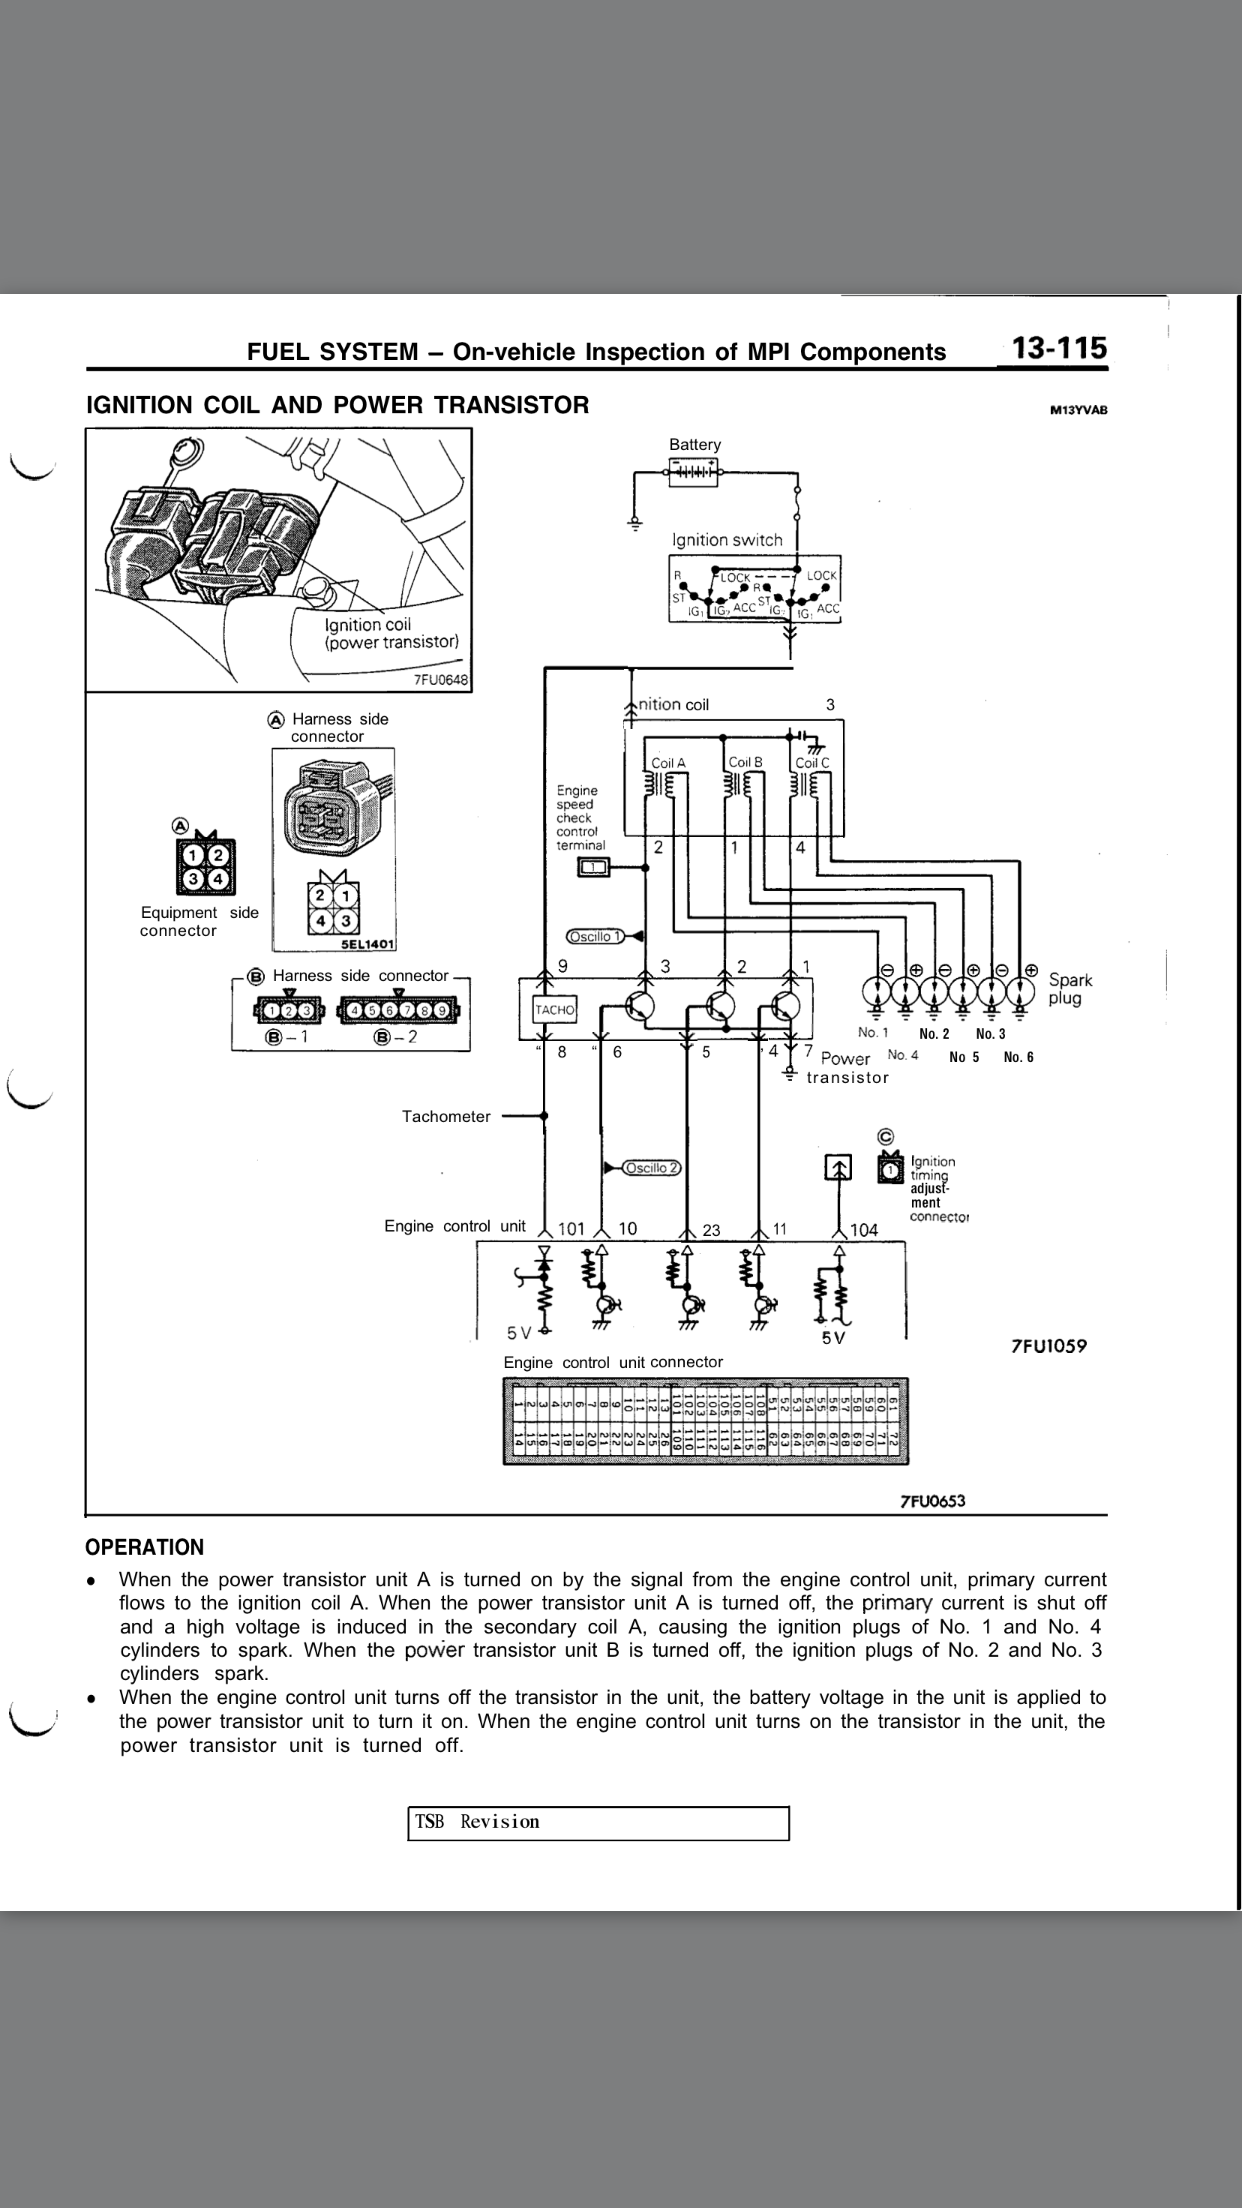 mitsubishi gto wiring diagram - wiring diagrams post leak-park-a -  leak-park-a.michelegori.it  michelegori.it